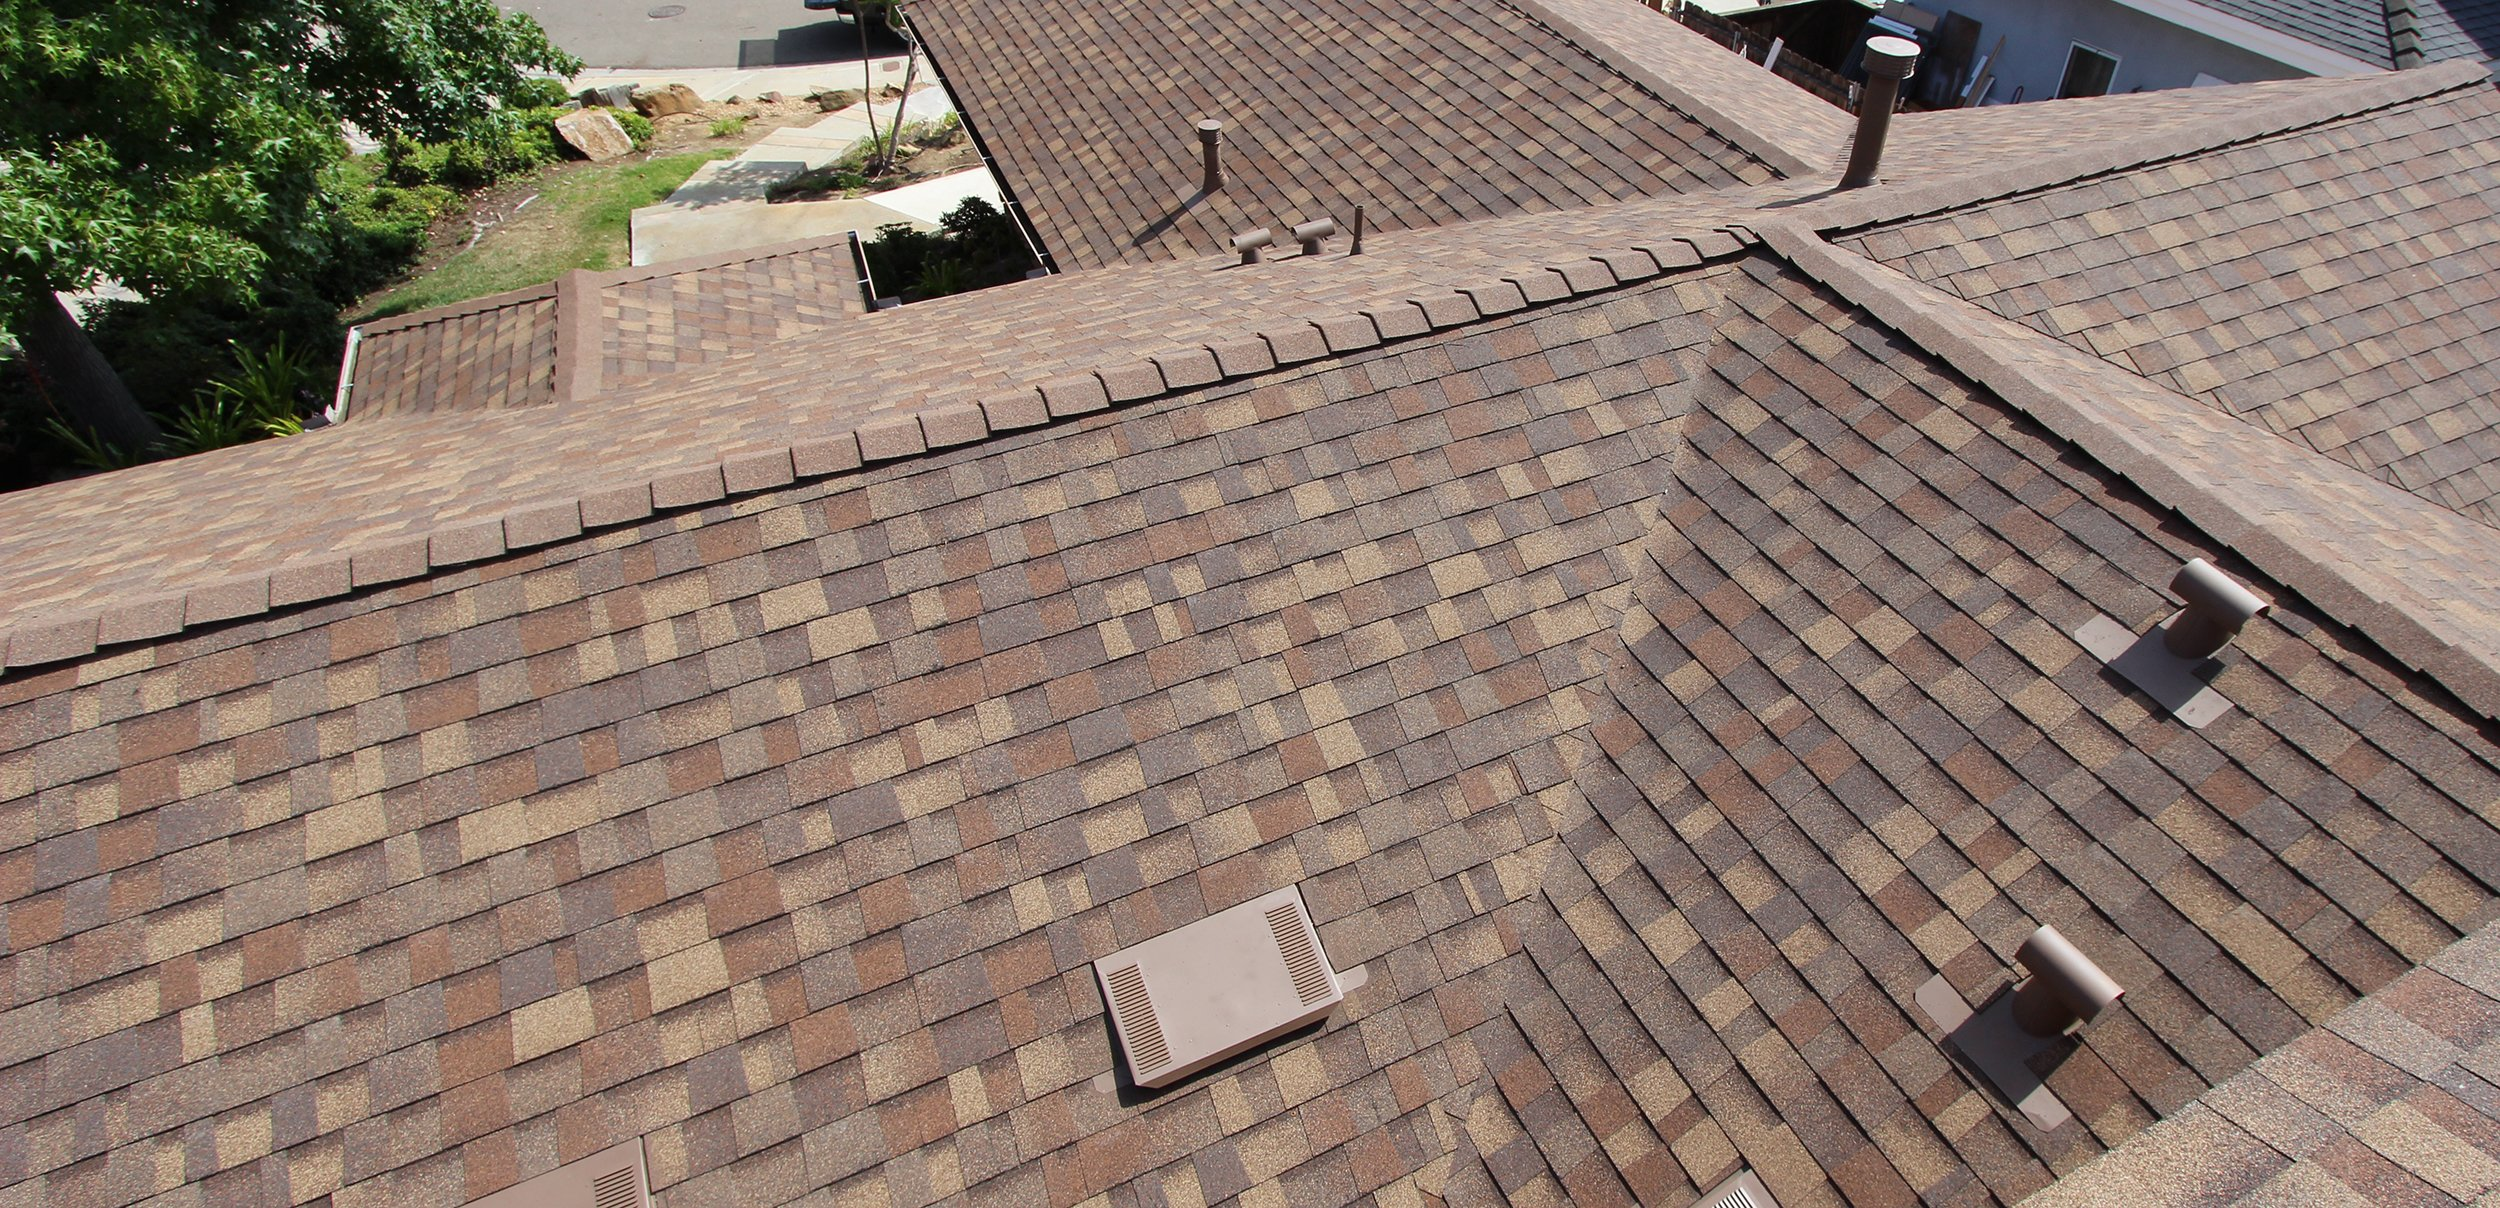 Roofing Division San Diego Ca Over 25 Years Experience